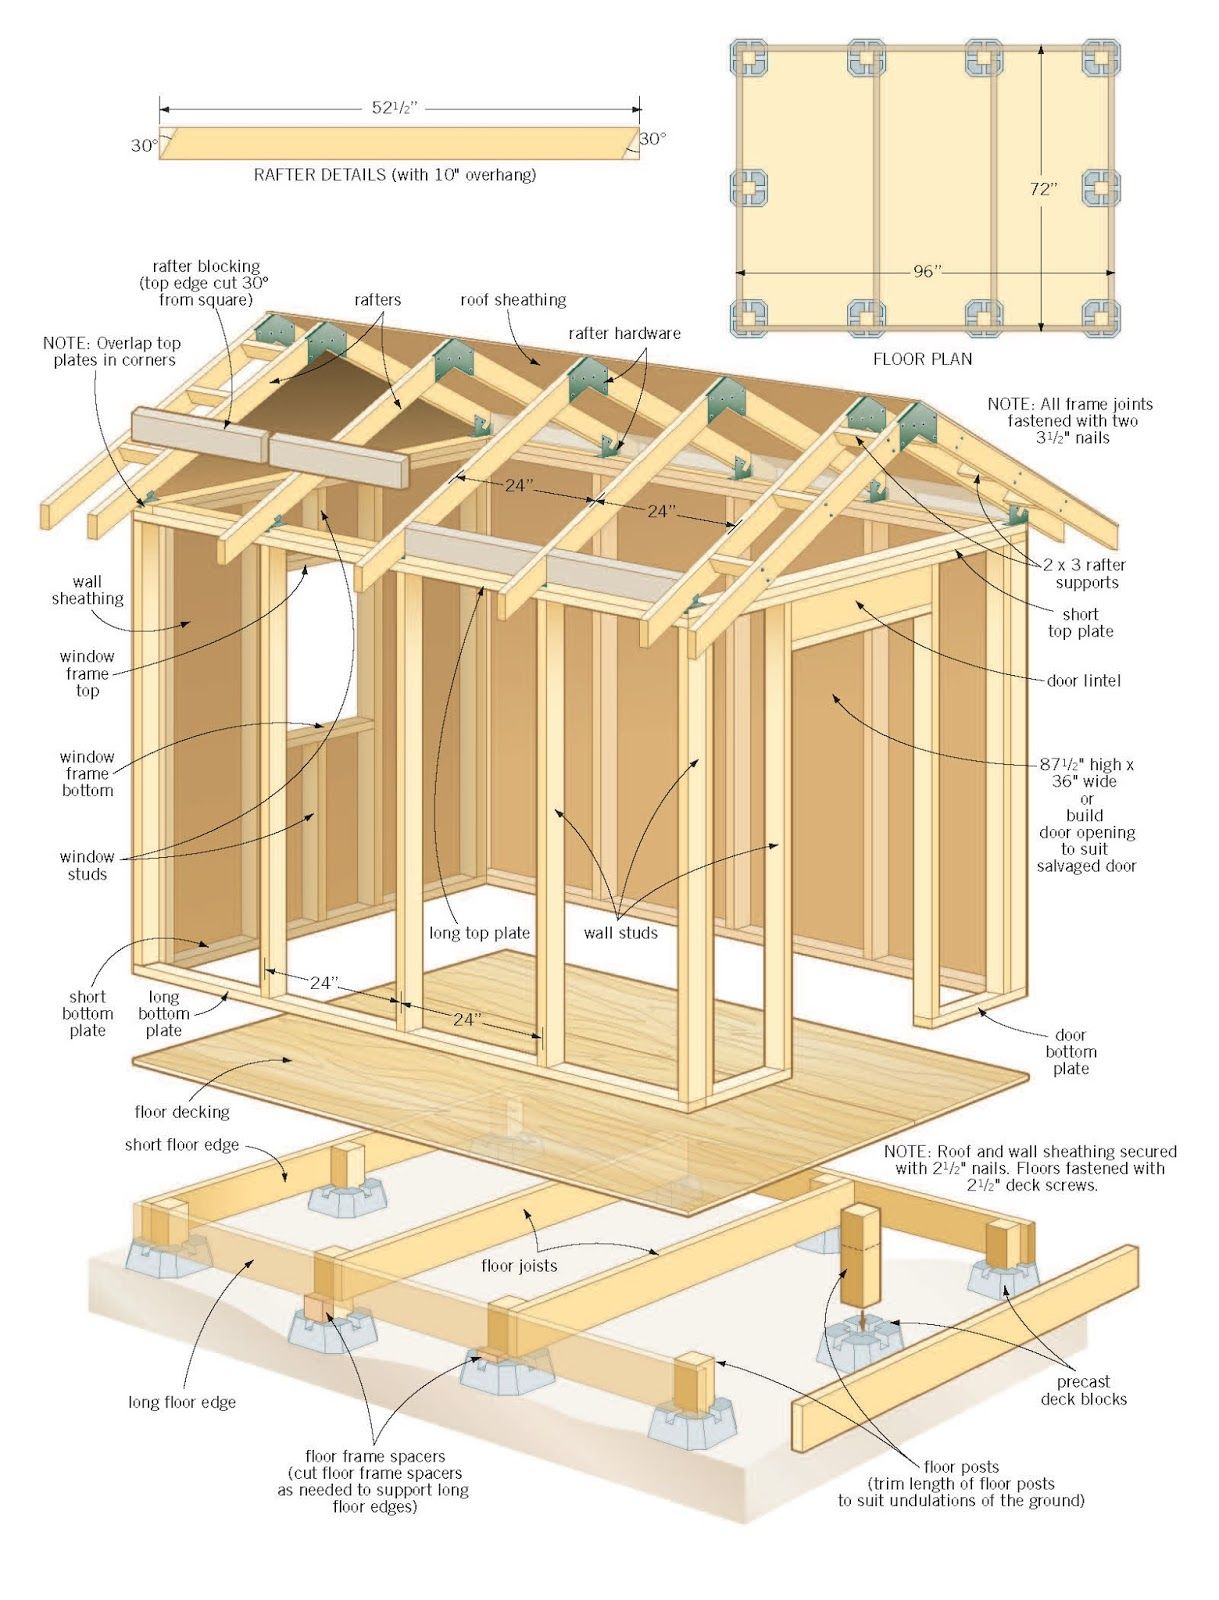 Shed Plans 14 X 36 12 Jpg 1 219 1 600 Pixels Shed Design Shed Plans Wood Projects Plans